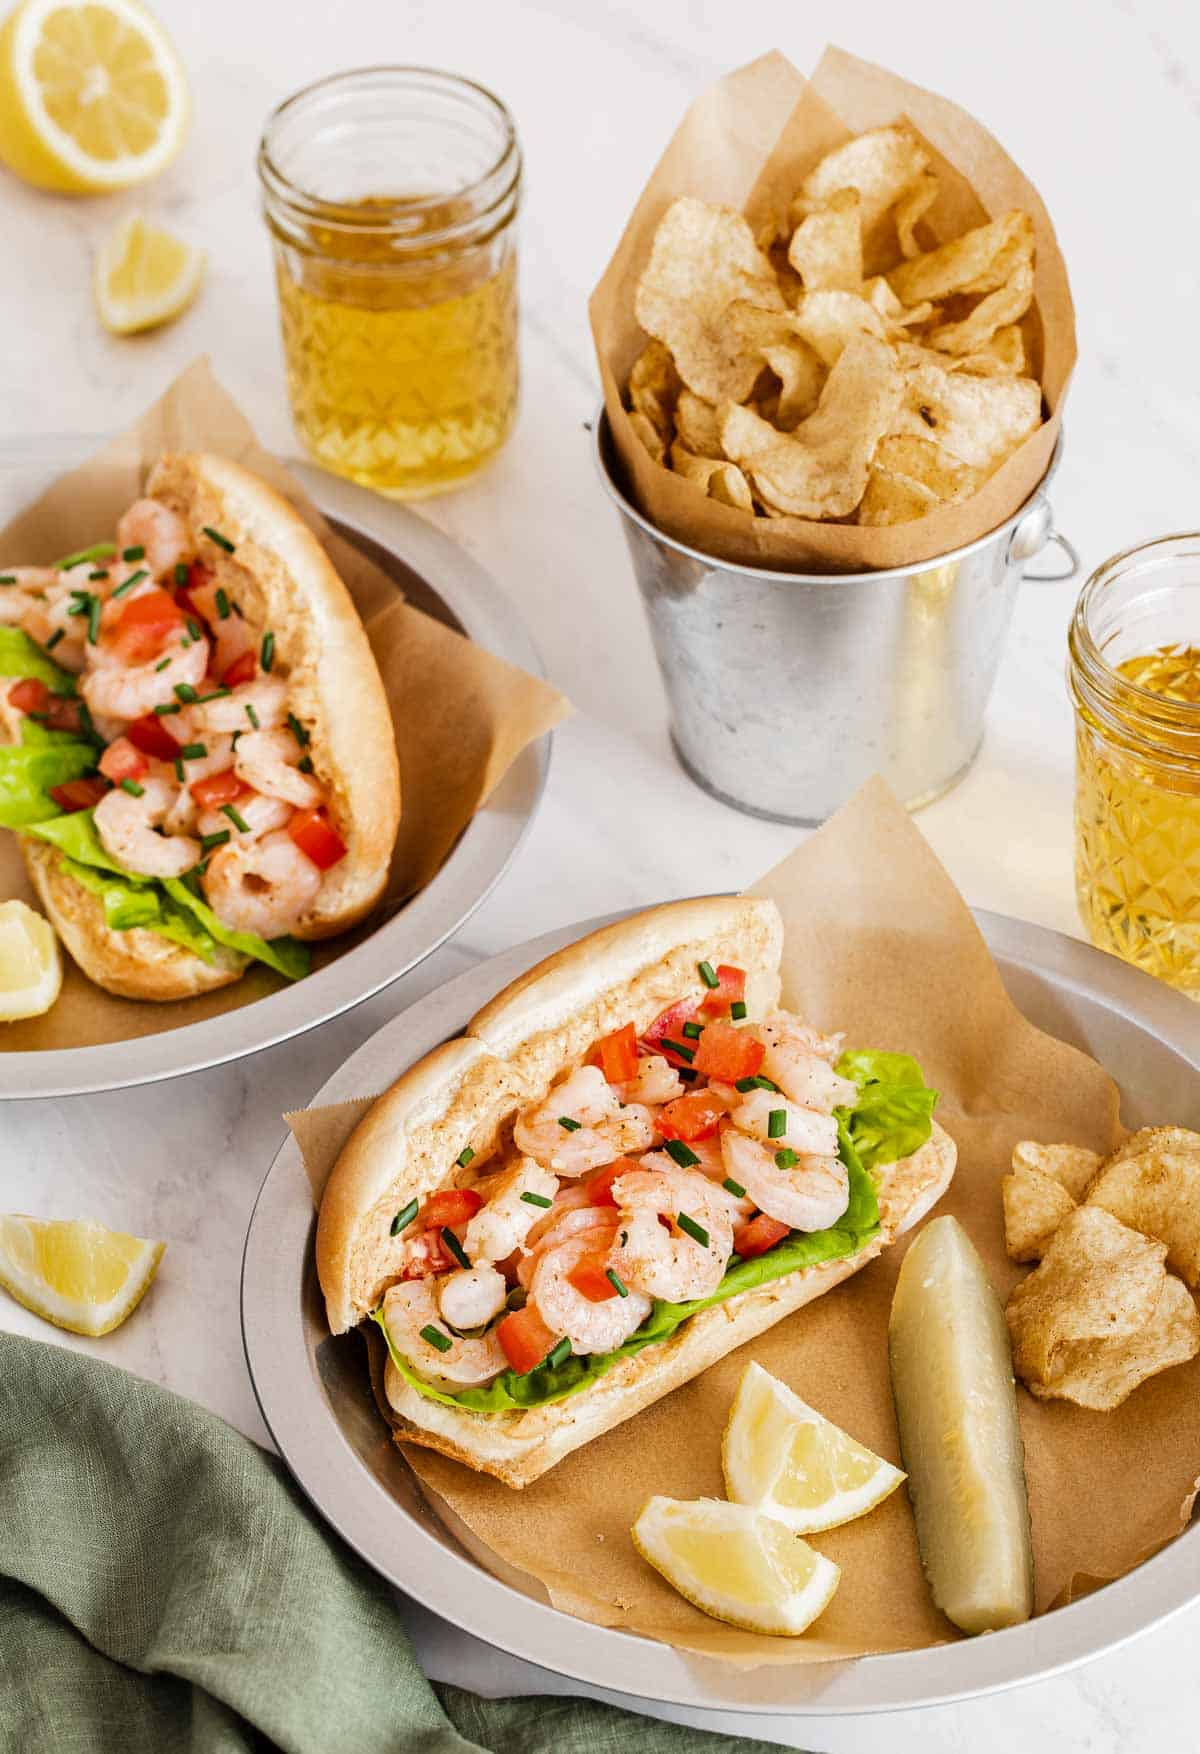 Shrimp Po Boys on plates with chips and pickles.